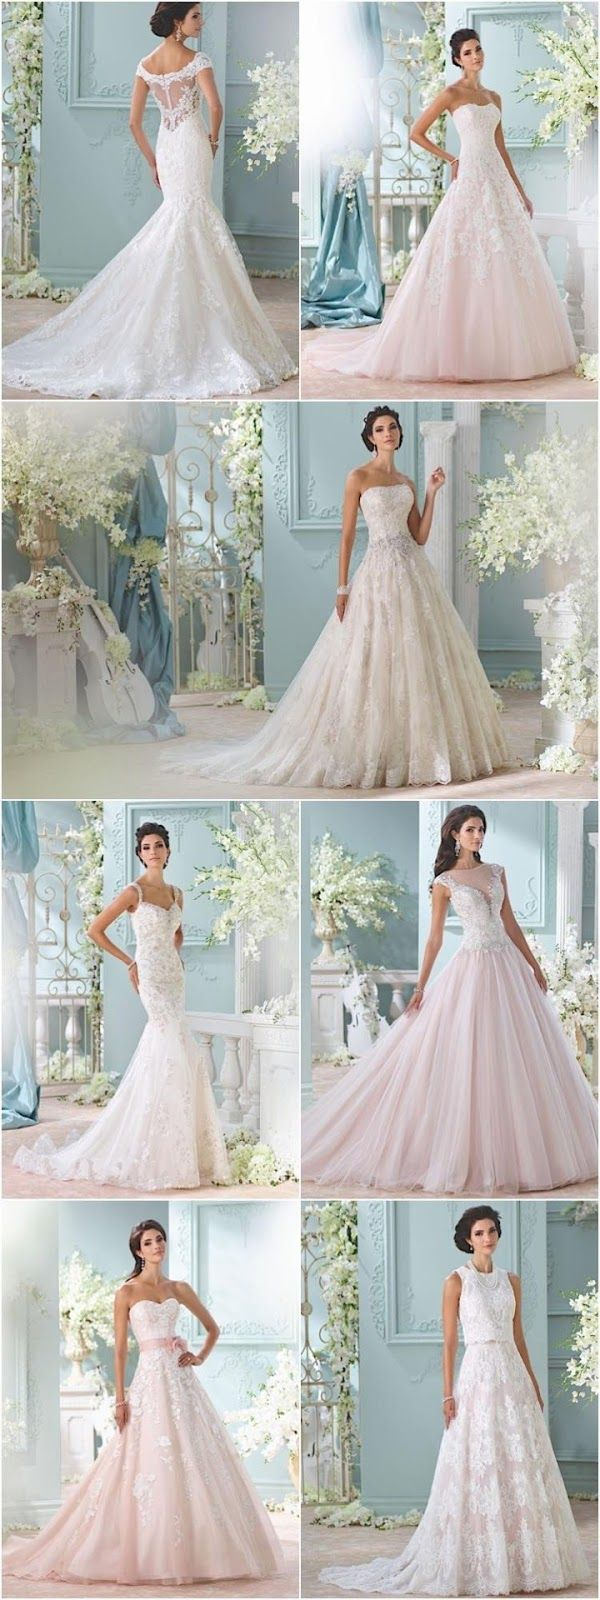 25 The Most Gorgeous Wedding Dresses                                                           Sophisticated, chic, elegant, a...